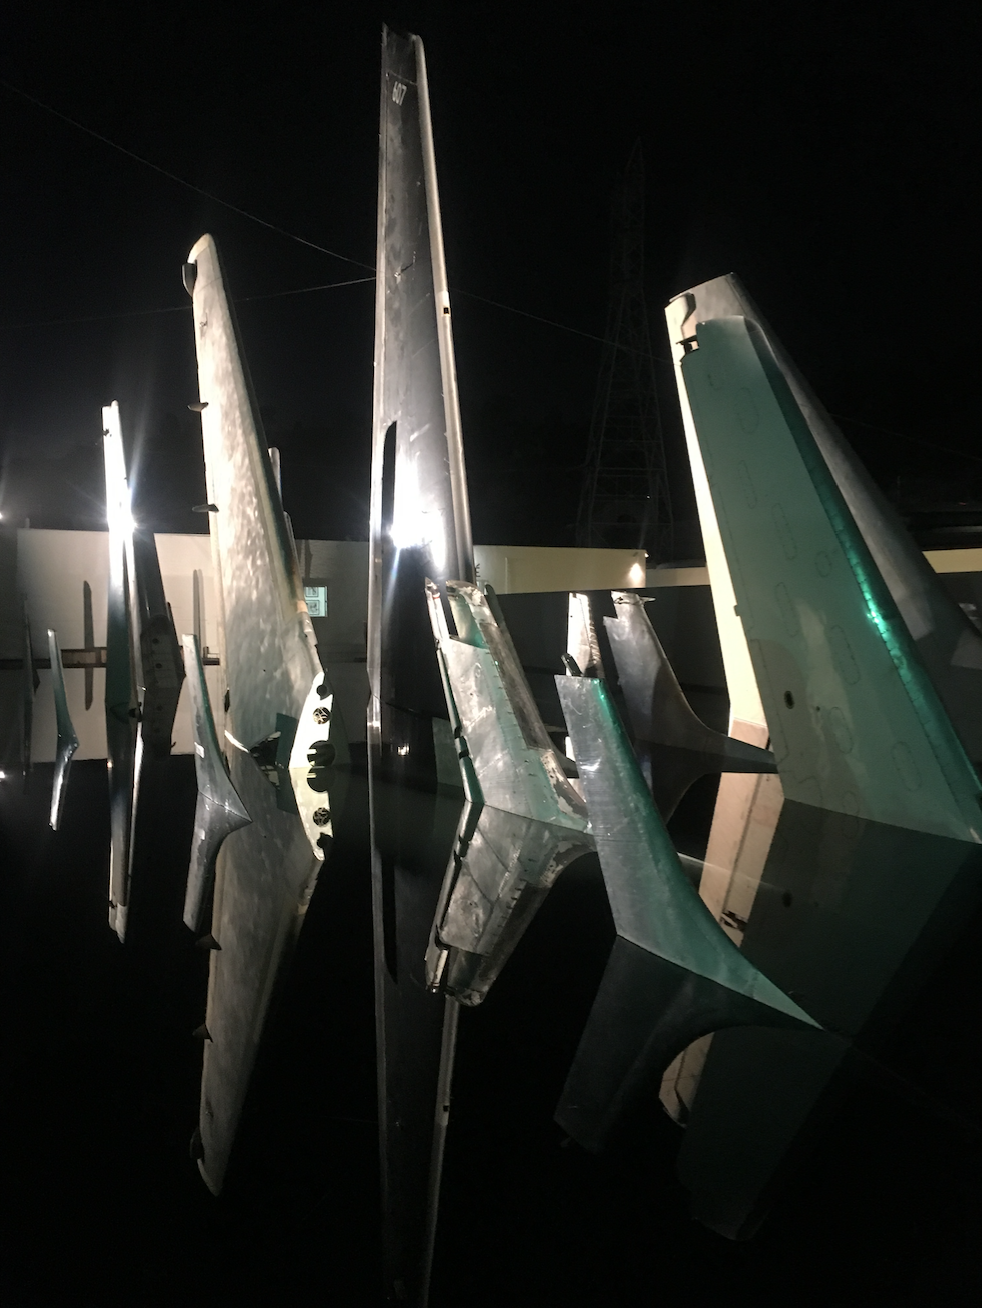 Clean Air Turbulence (The Portent)   The 14th Factory - Simon Birch Site-specific installation: Salvaged airplane tails in steel-framed pool Aluminum, steel, paint, water, ink, 2016-17